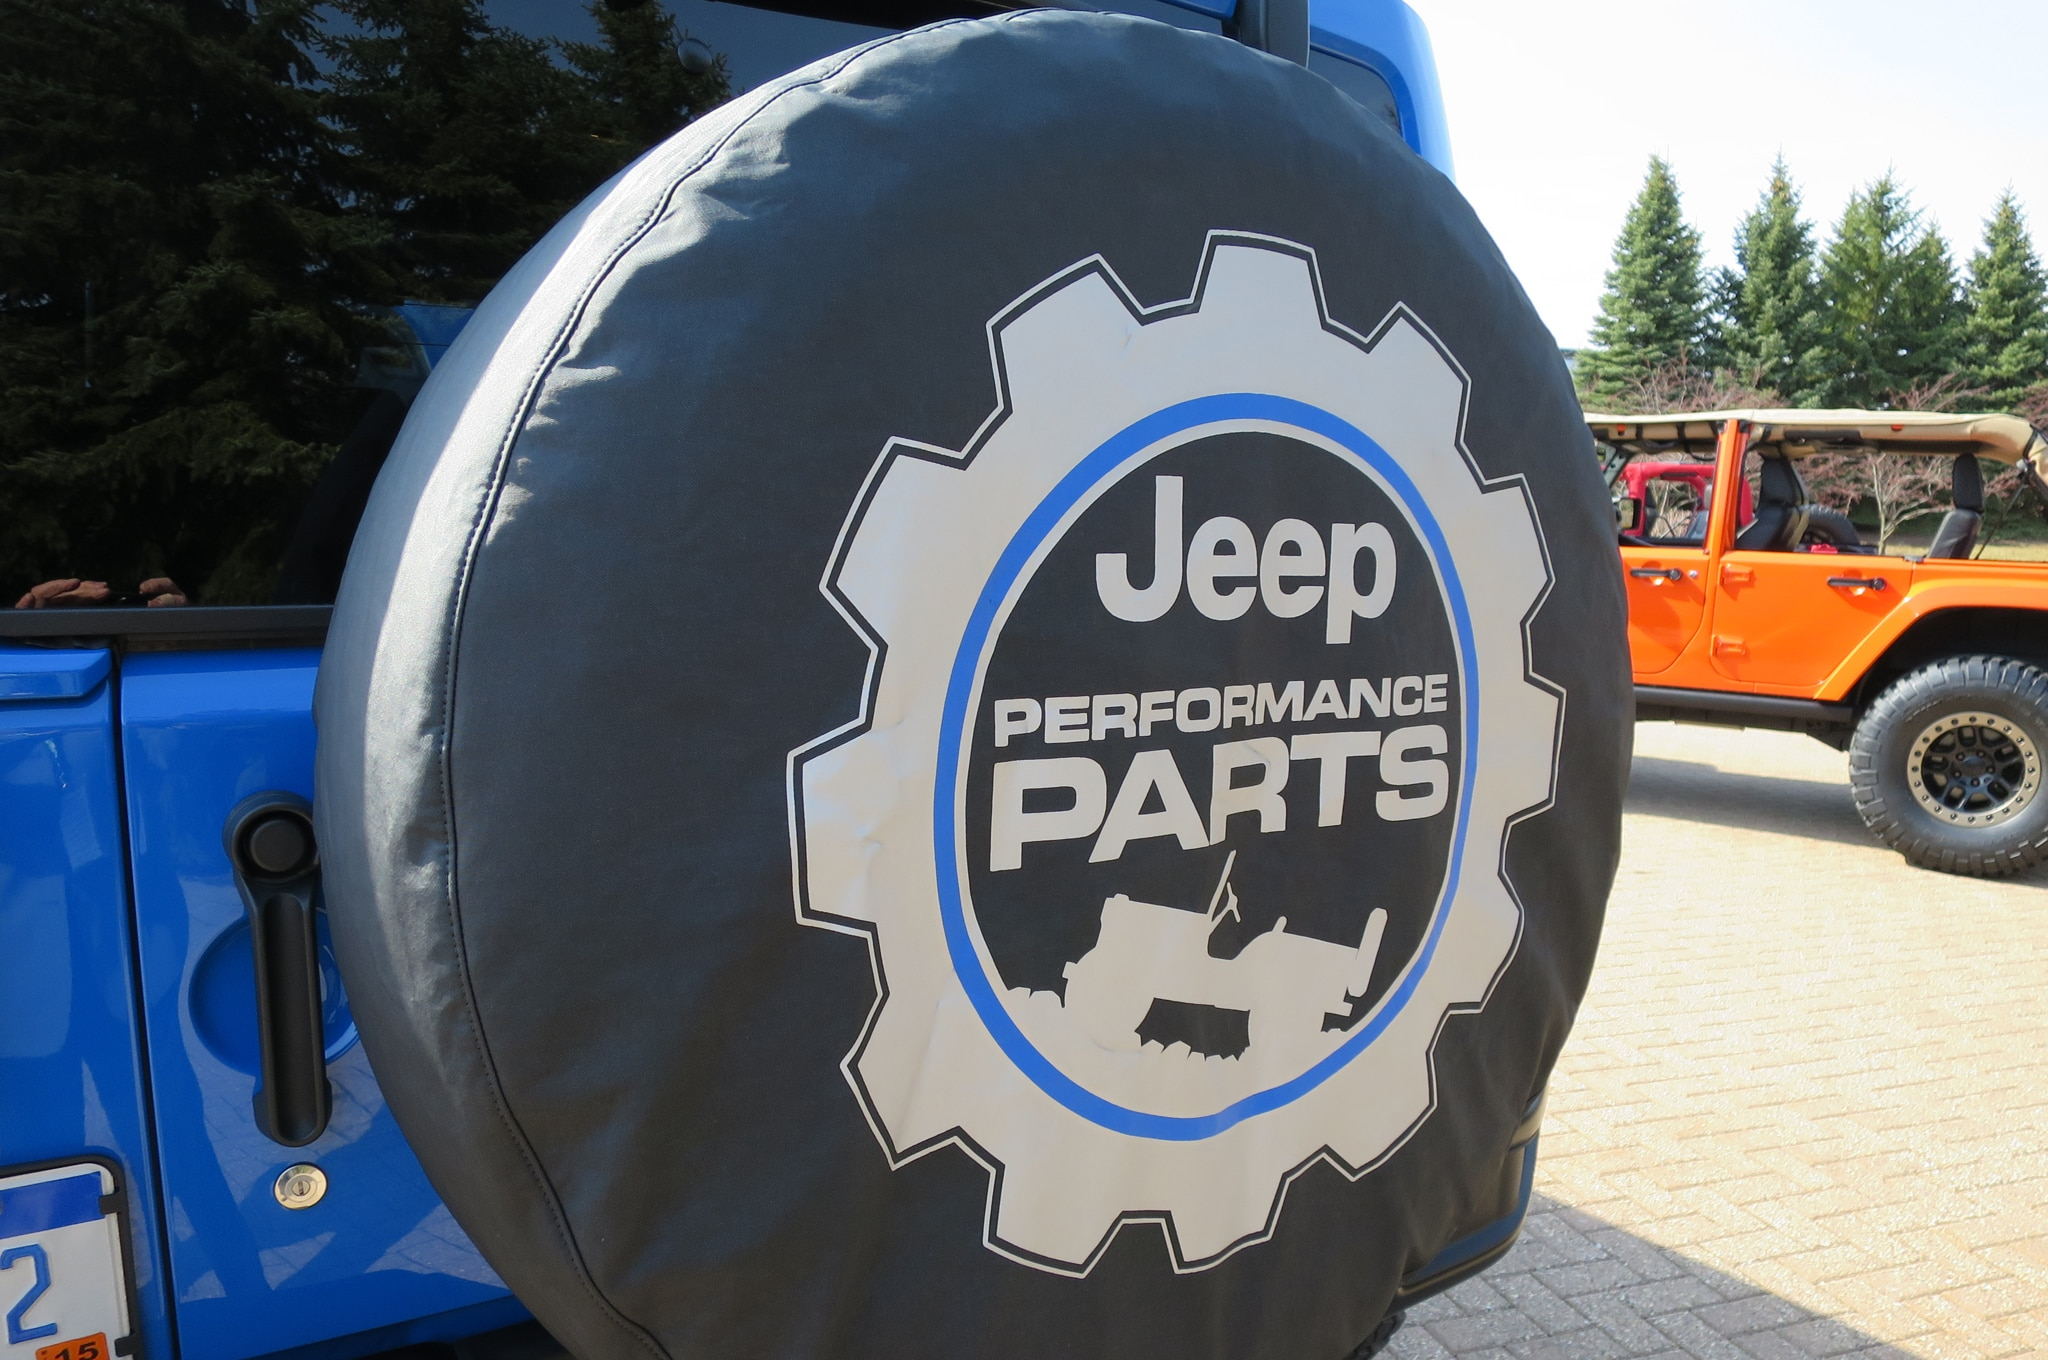 Jeep Wrangler Maximum Performance Concept spare tire